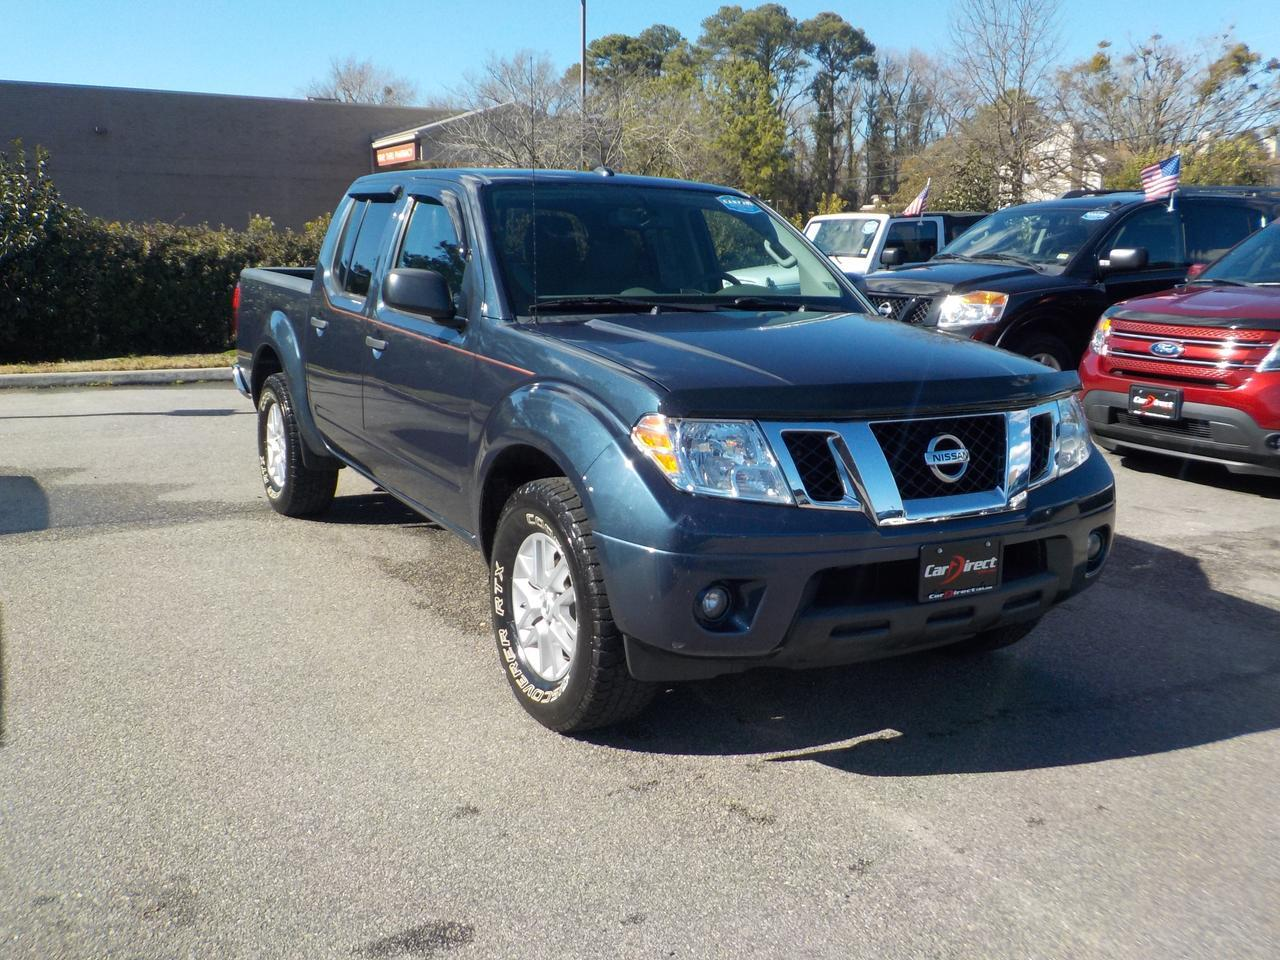 2015 NISSAN FRONTIER CREW CAB SV, ONE OWNER, HEATED SEATS, BLUETOOTH, TOW PACKAGE, BACKUP CAMERA, ONLY 65K MILES! Virginia Beach VA